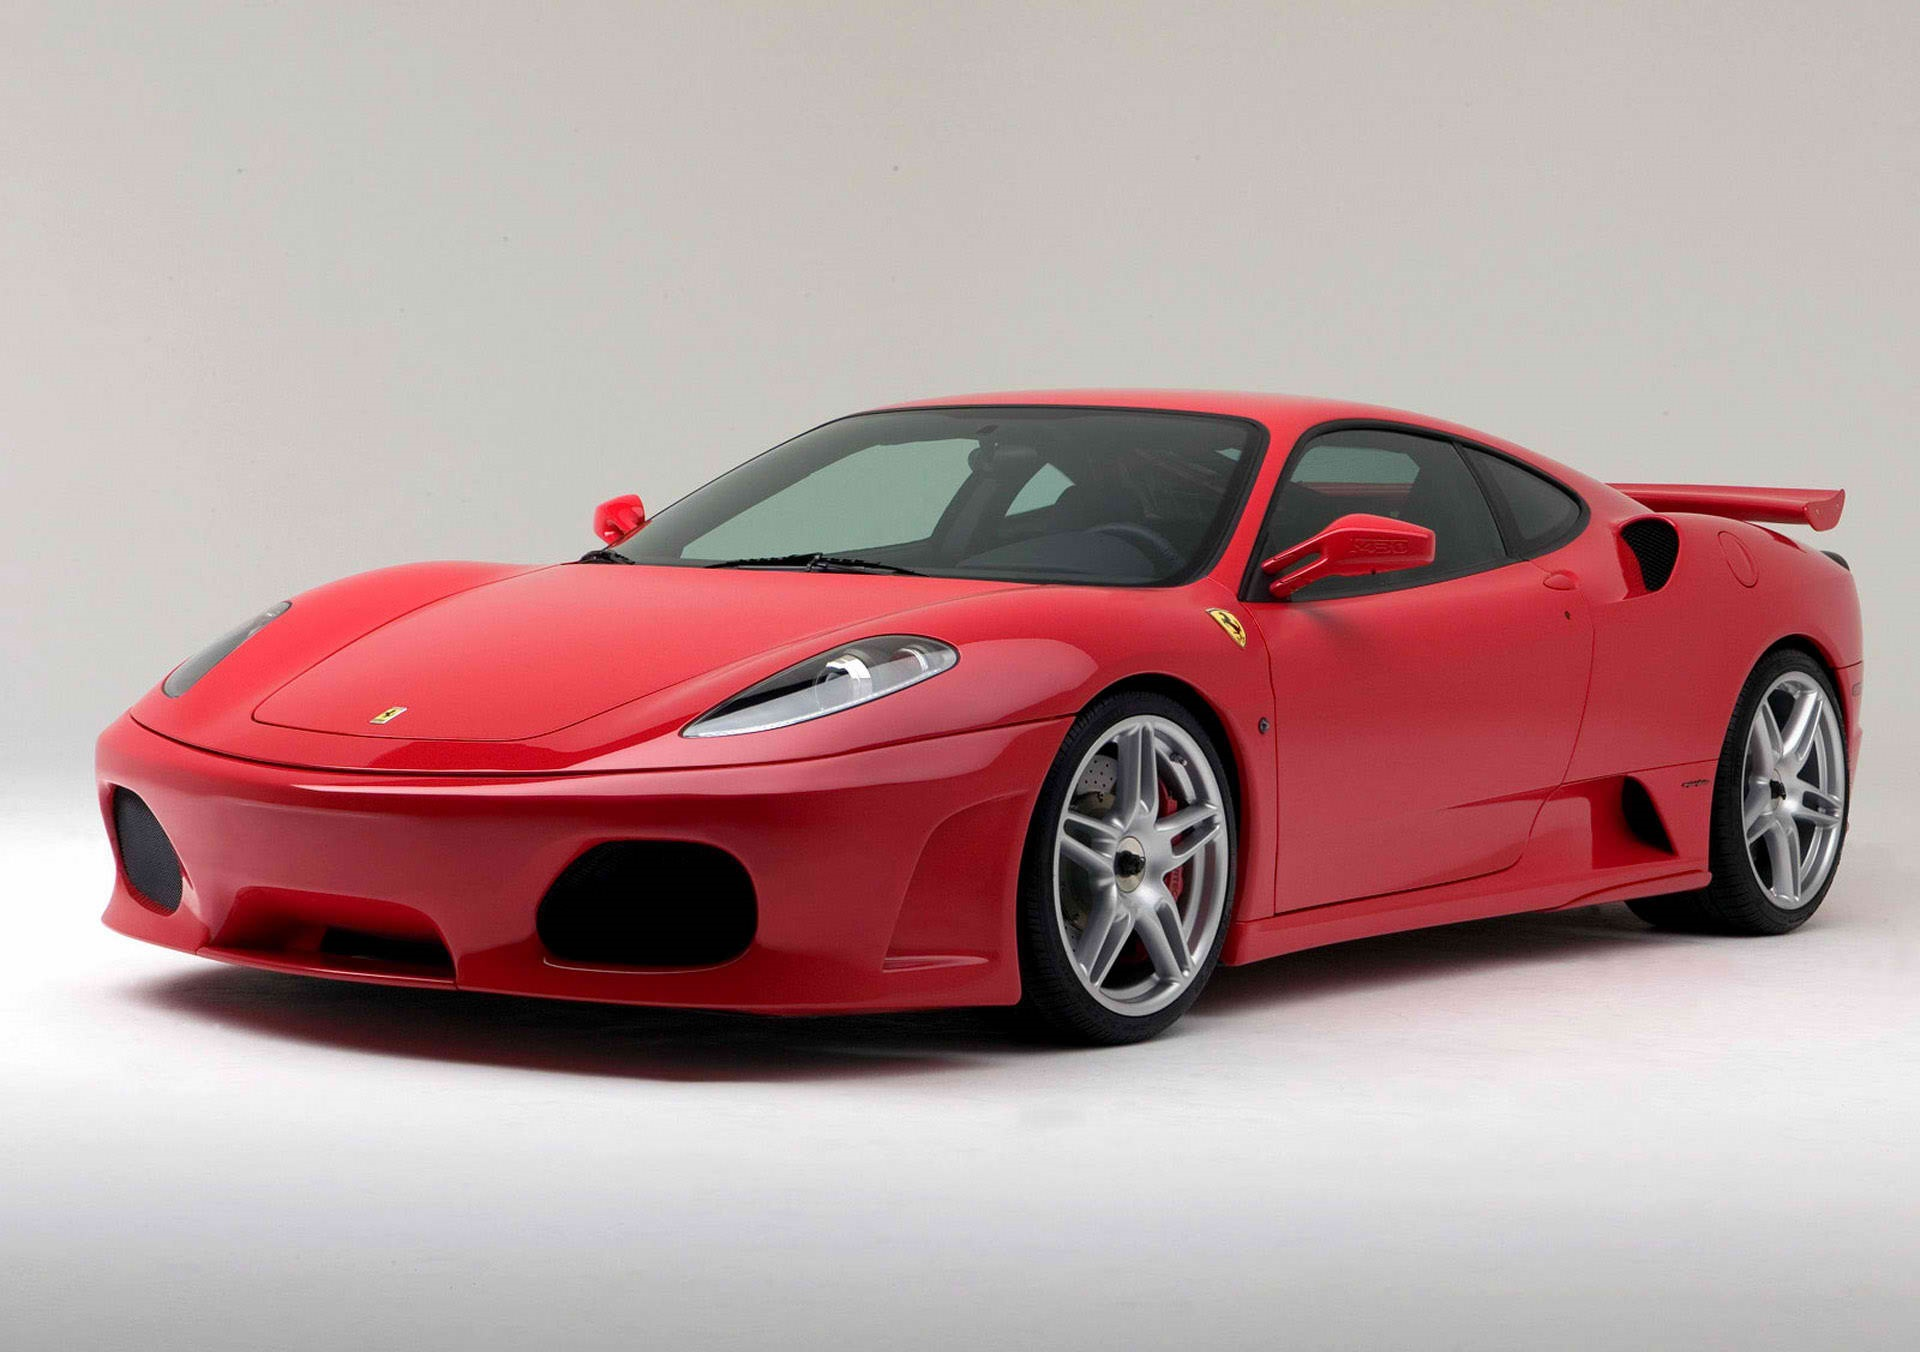 ferrari f430 replica body kit. Black Bedroom Furniture Sets. Home Design Ideas